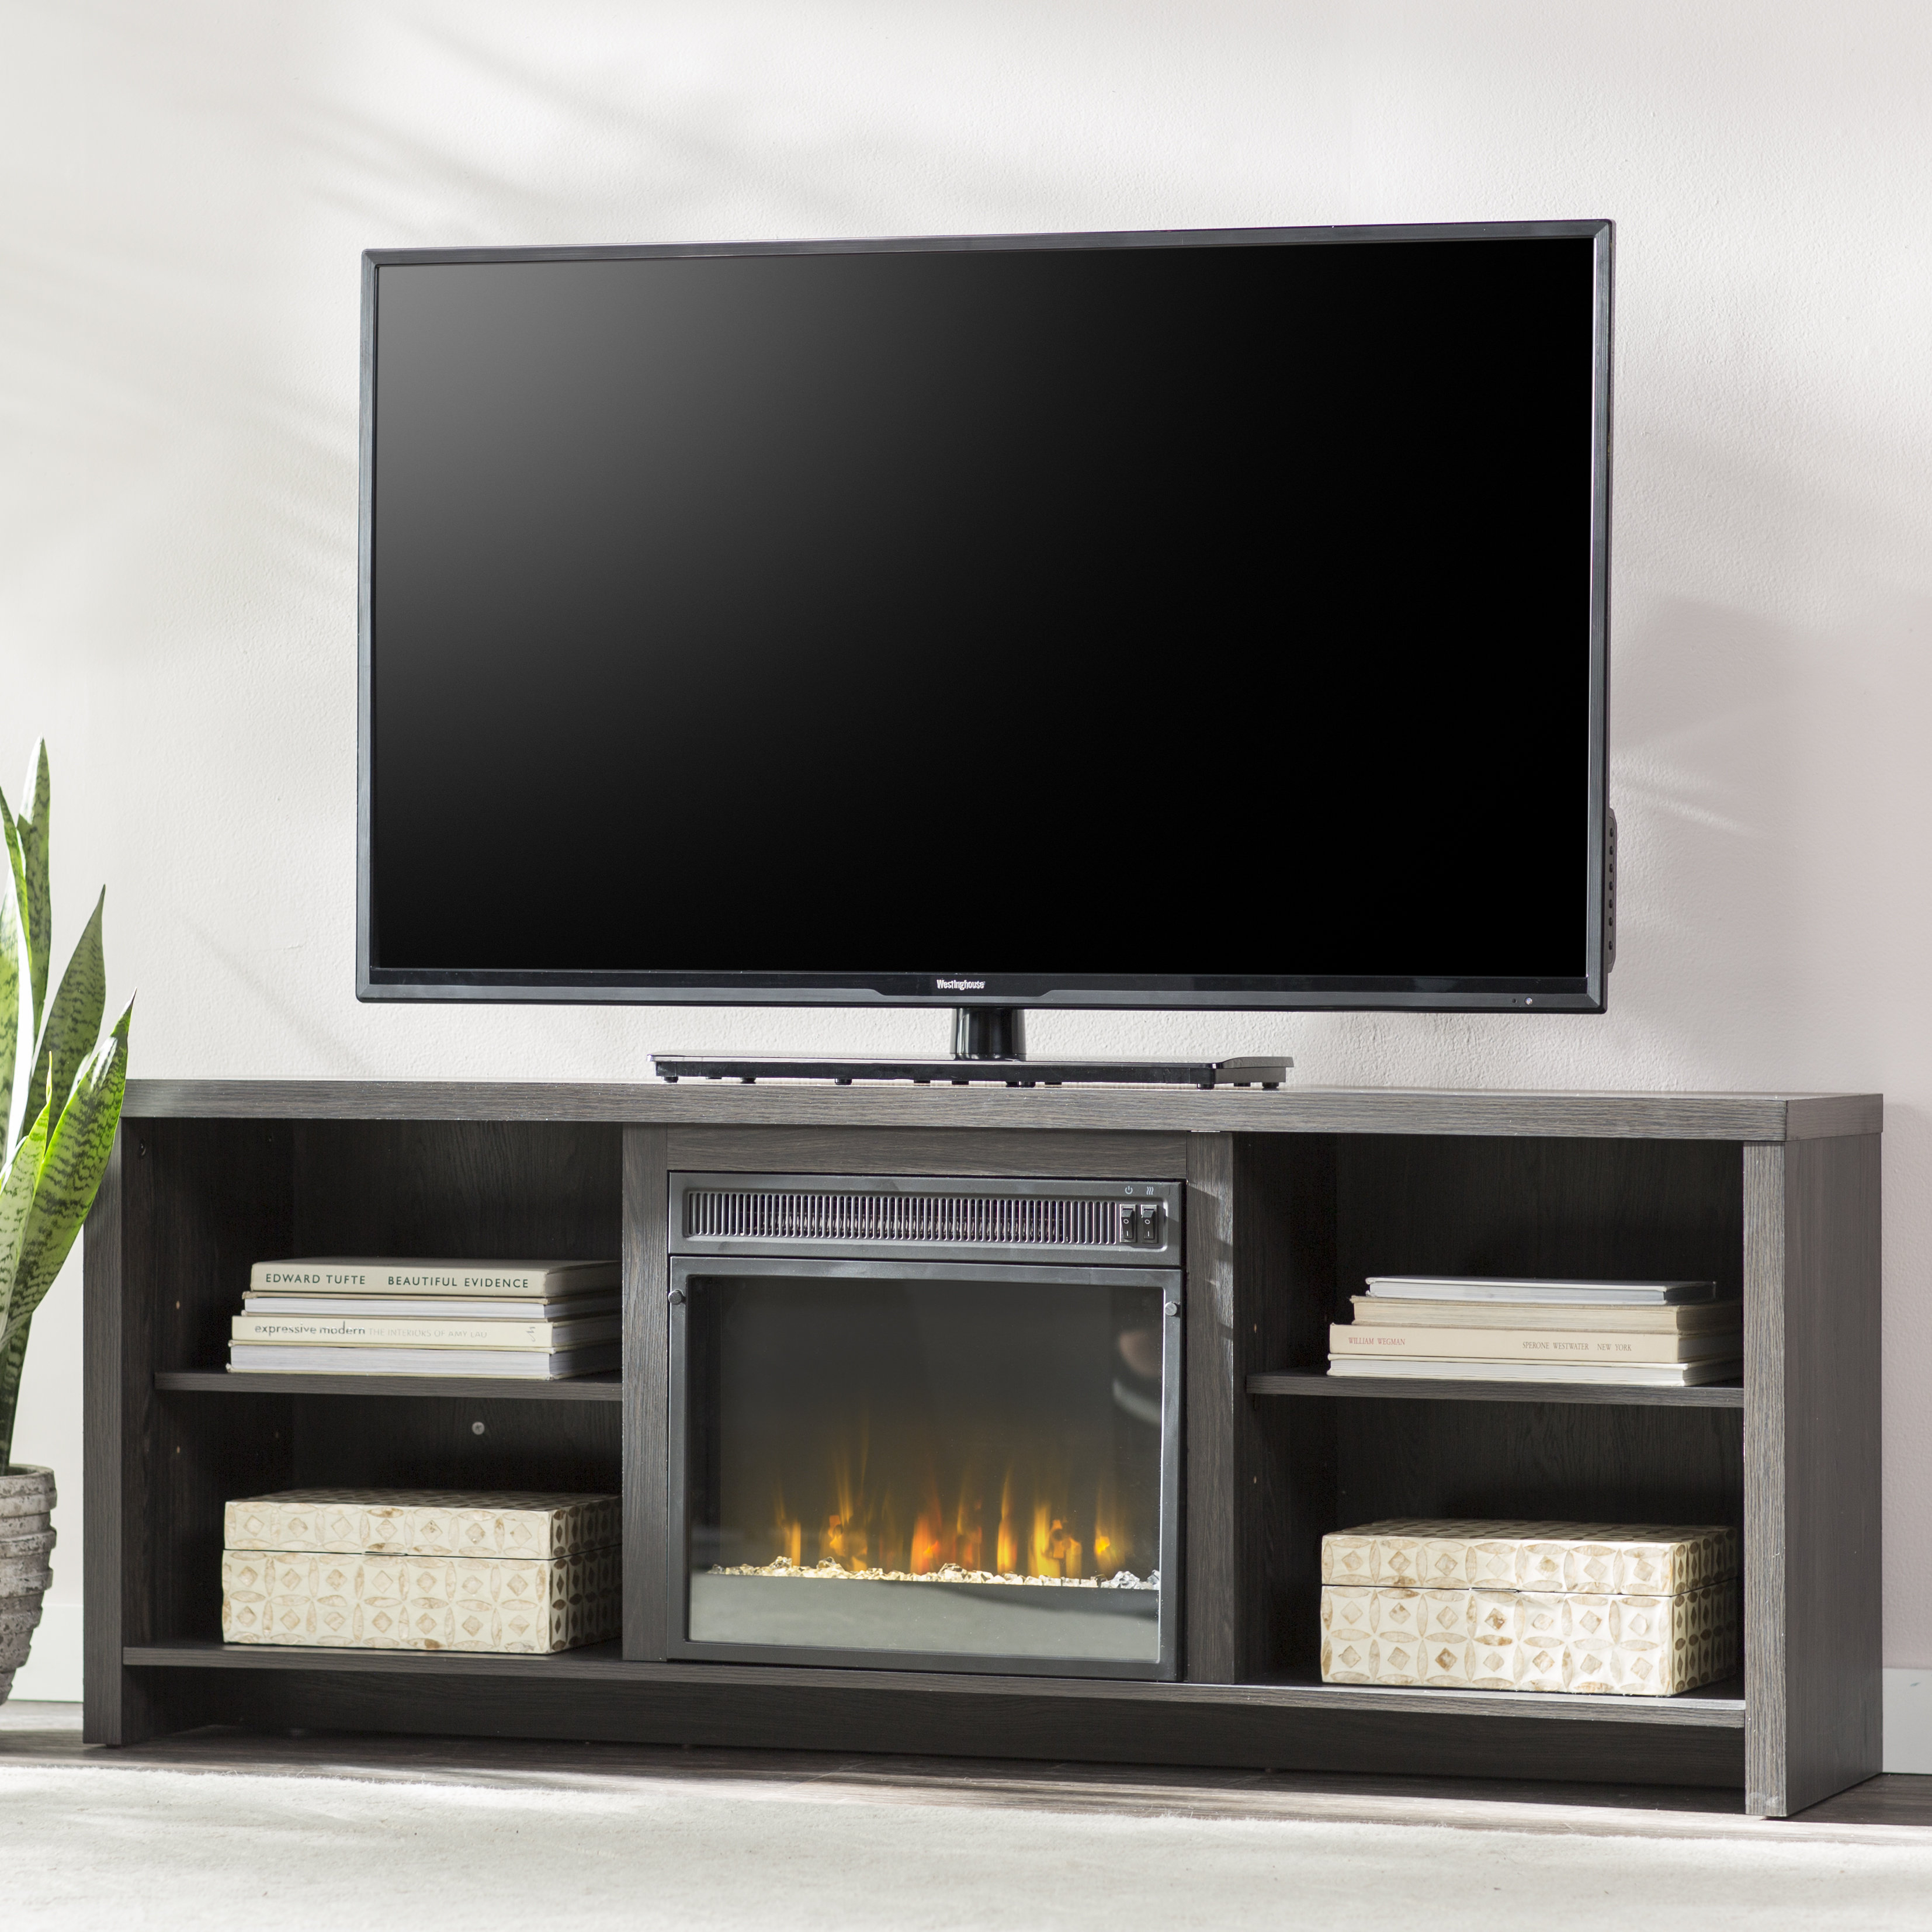 Fireplace Tv Stands & Entertainment Centers You'll Love | Wayfair (View 11 of 30)